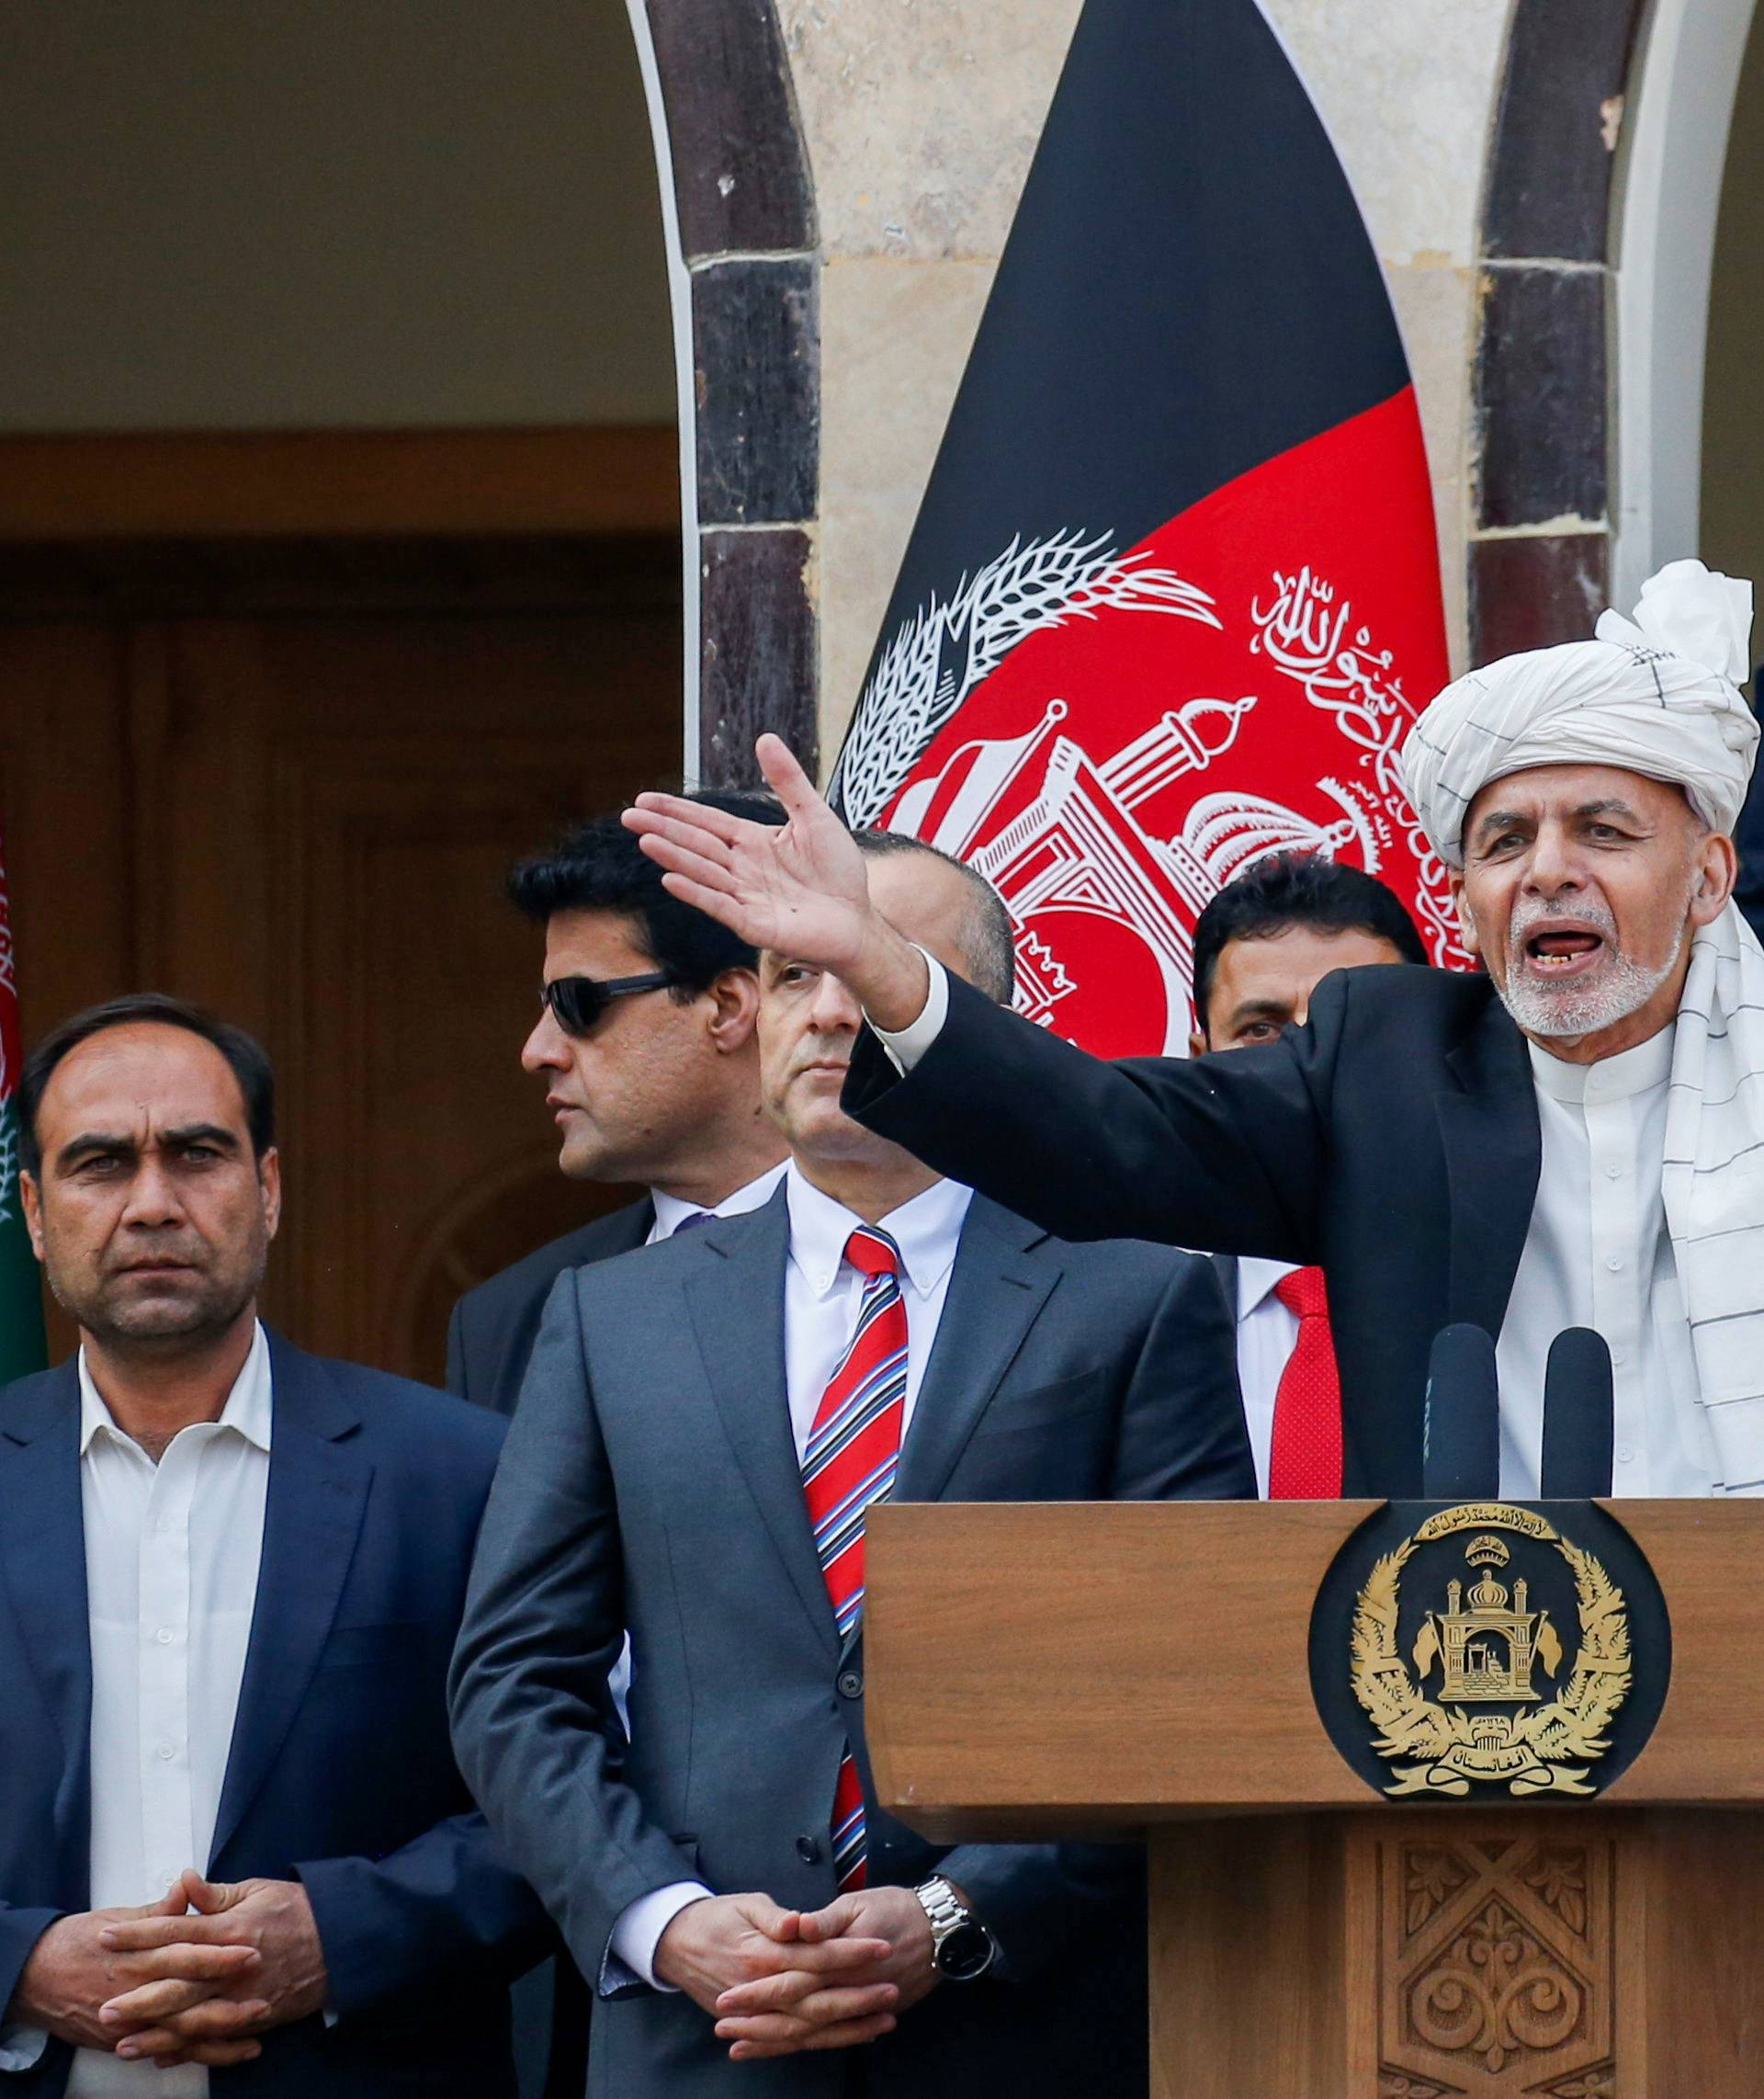 Afghanistan's President Ashraf Ghani speaks during his inauguration as president, in Kabul